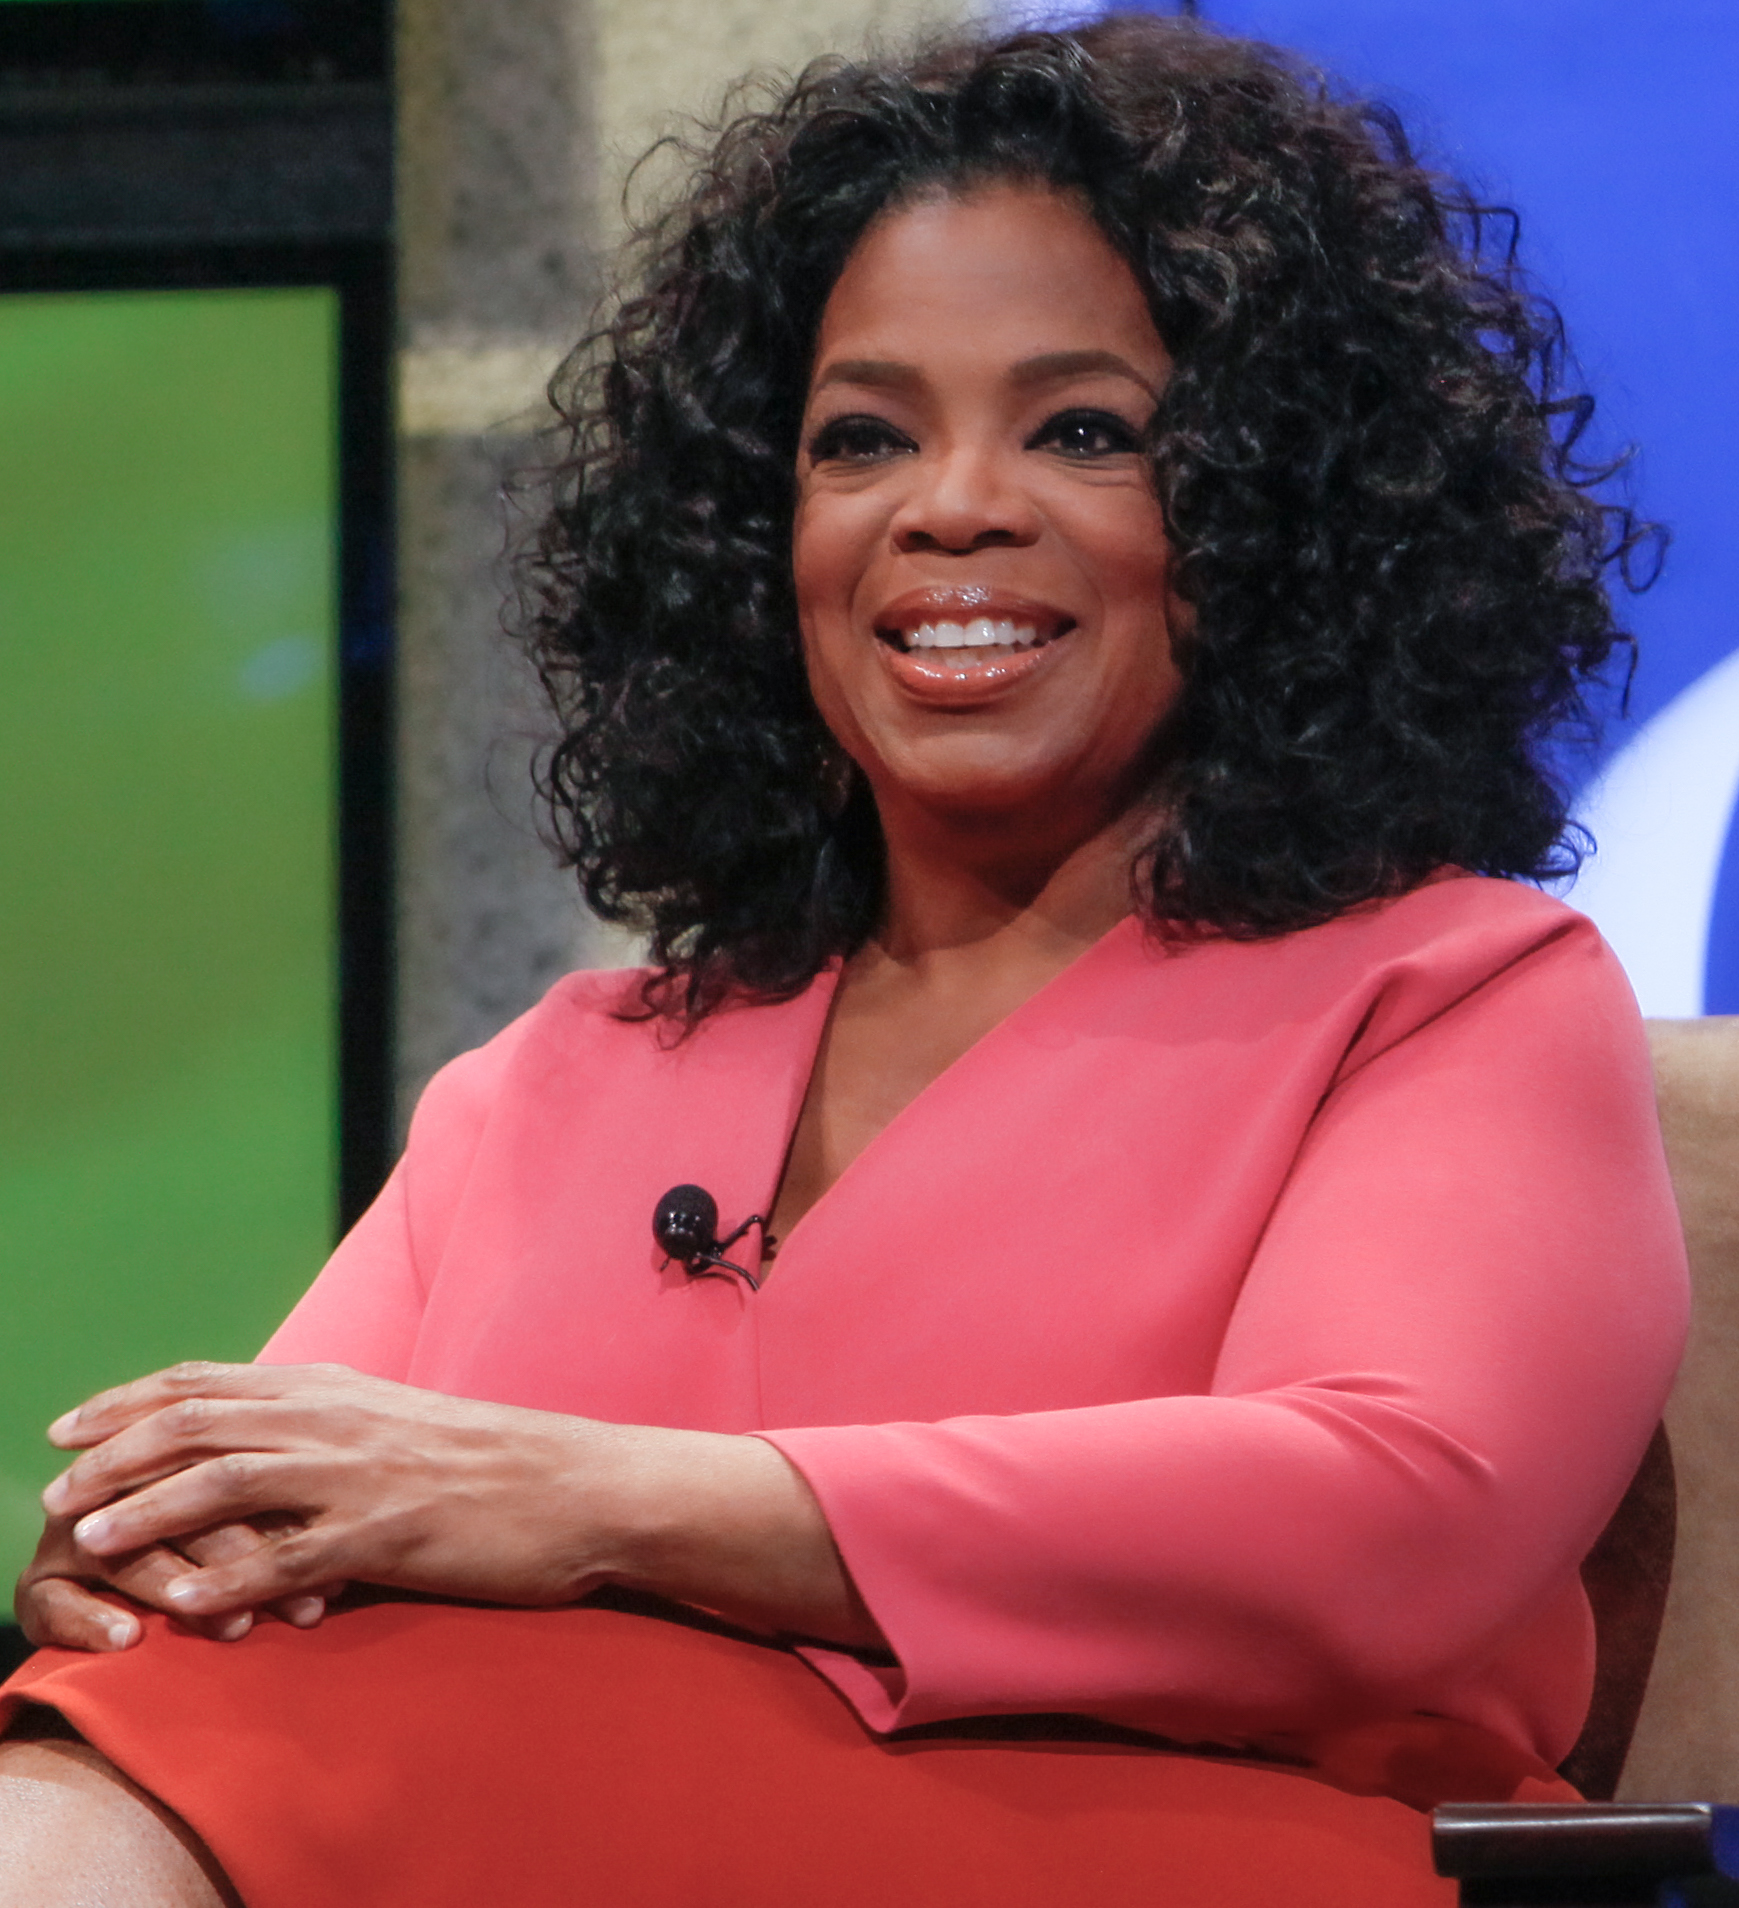 File:2011 Oprah at The Cable Show (29902986311) (2).jpg - Wikimedia Commons